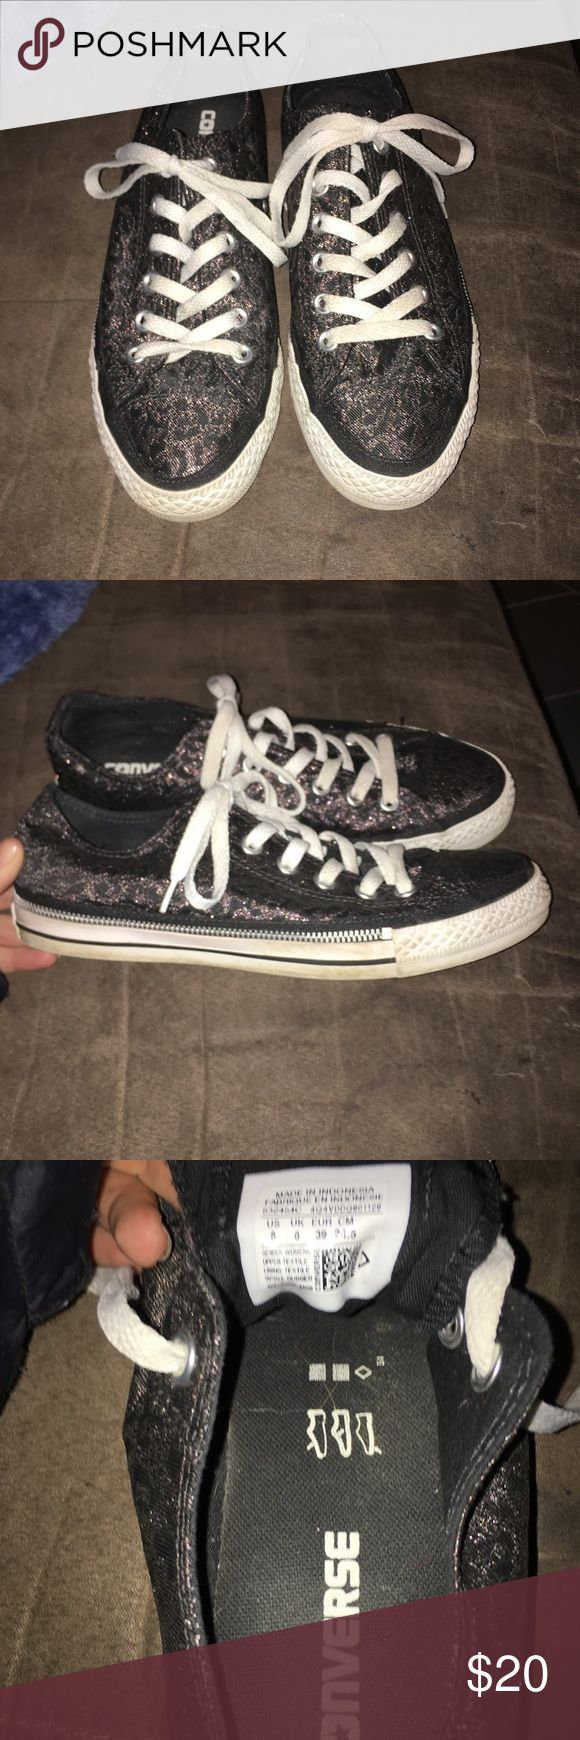 Women's leopard sparkle converse sneakers! Size 8! Only worn a handful of times! Just need a quick cleaning. Converse Shoes Sneakers